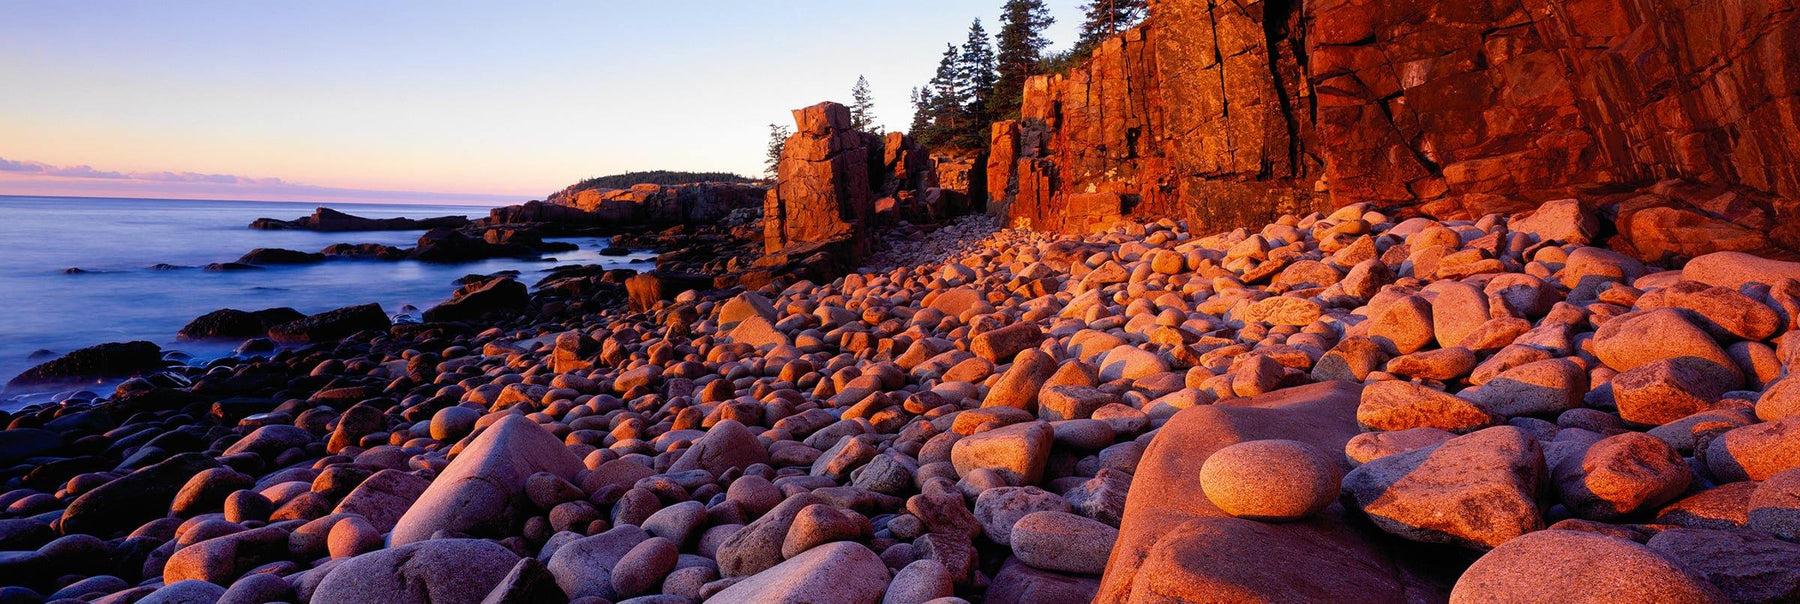 Rock beach at low tide next to a forest cliff at Acadia National Park Maine during sunrise